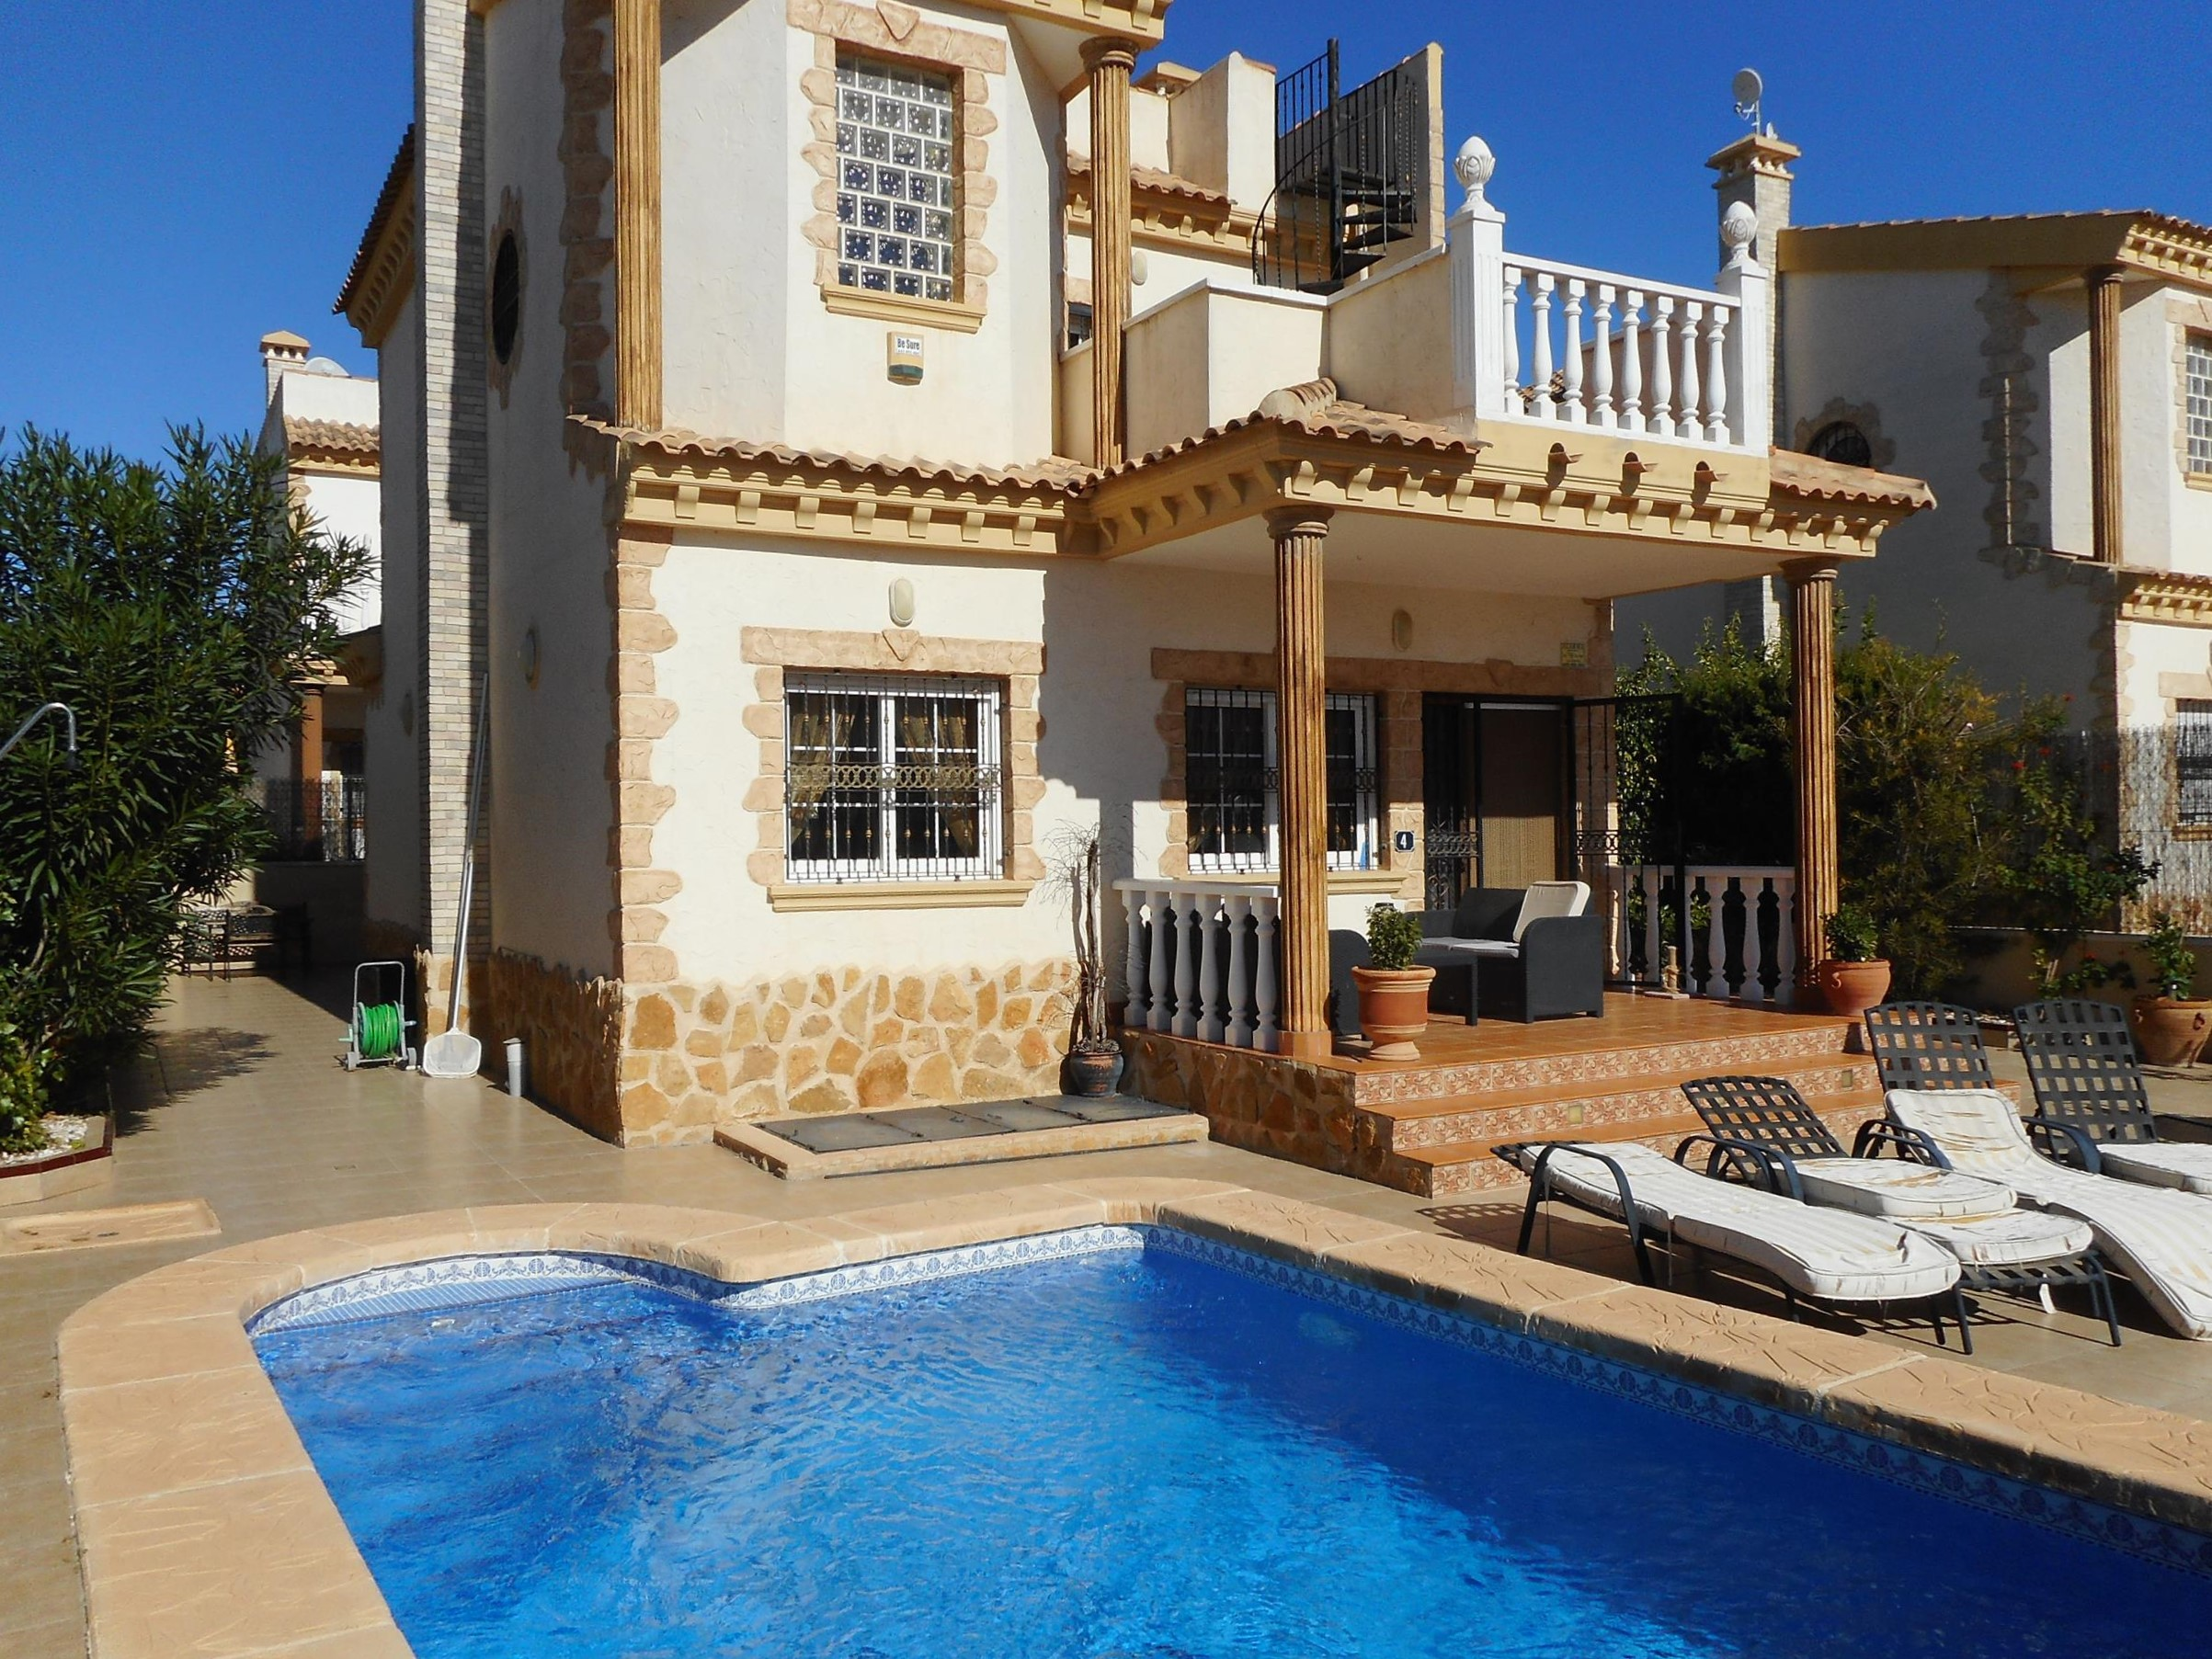 Ref:PC-54709 Villa For Sale in El Raso Guardamar